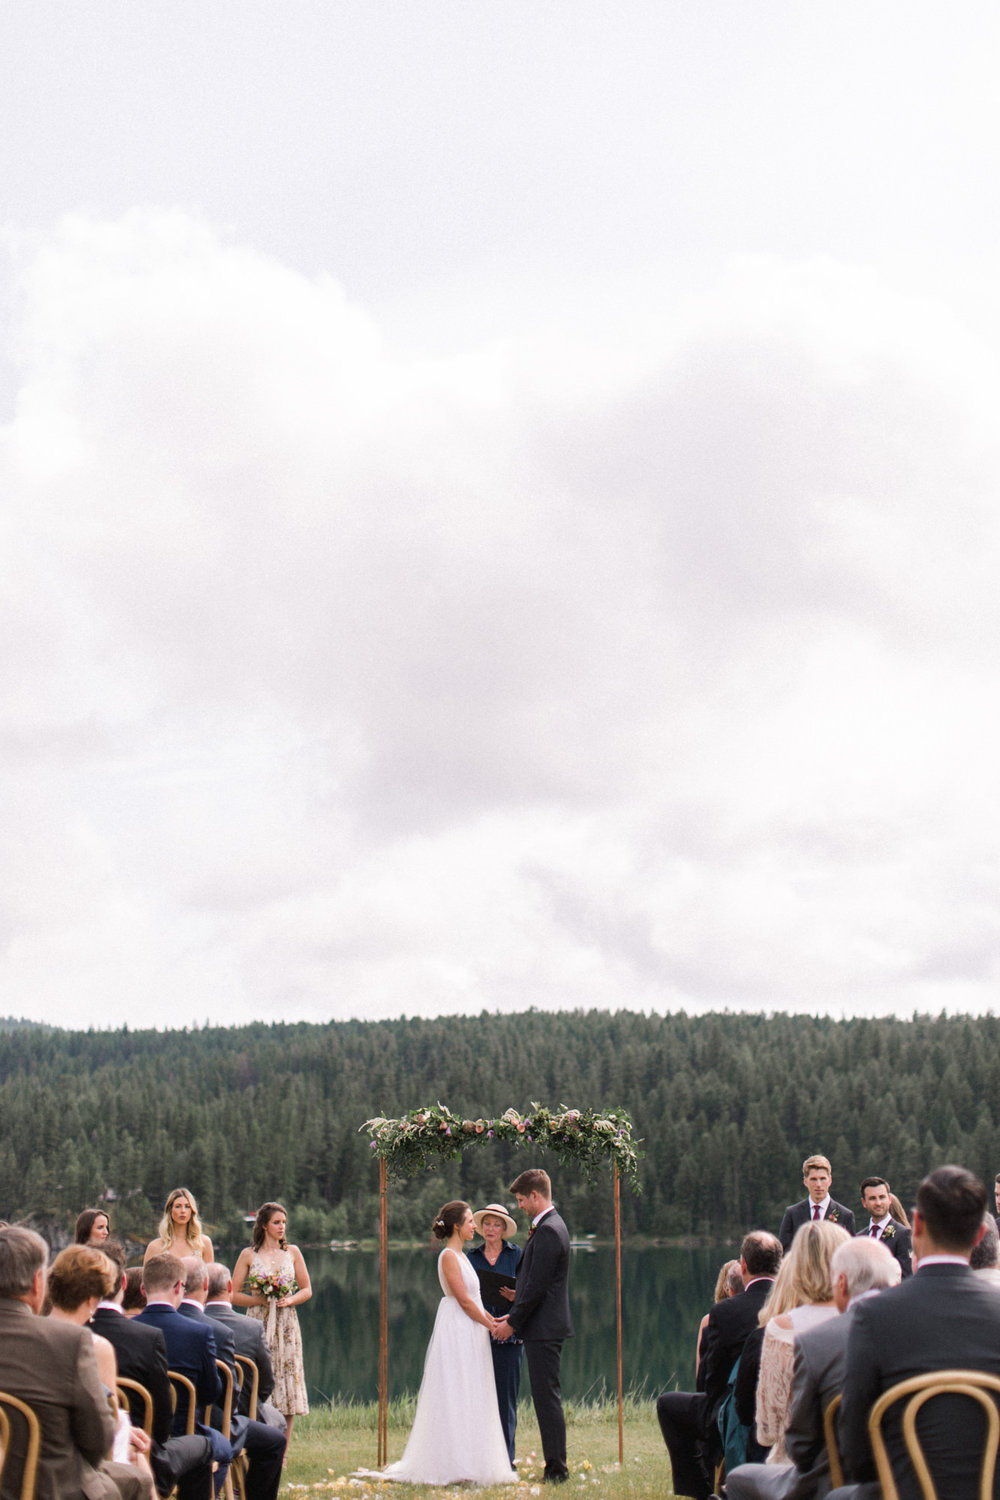 Invermere-romantic-summer-wedding-21.jpg